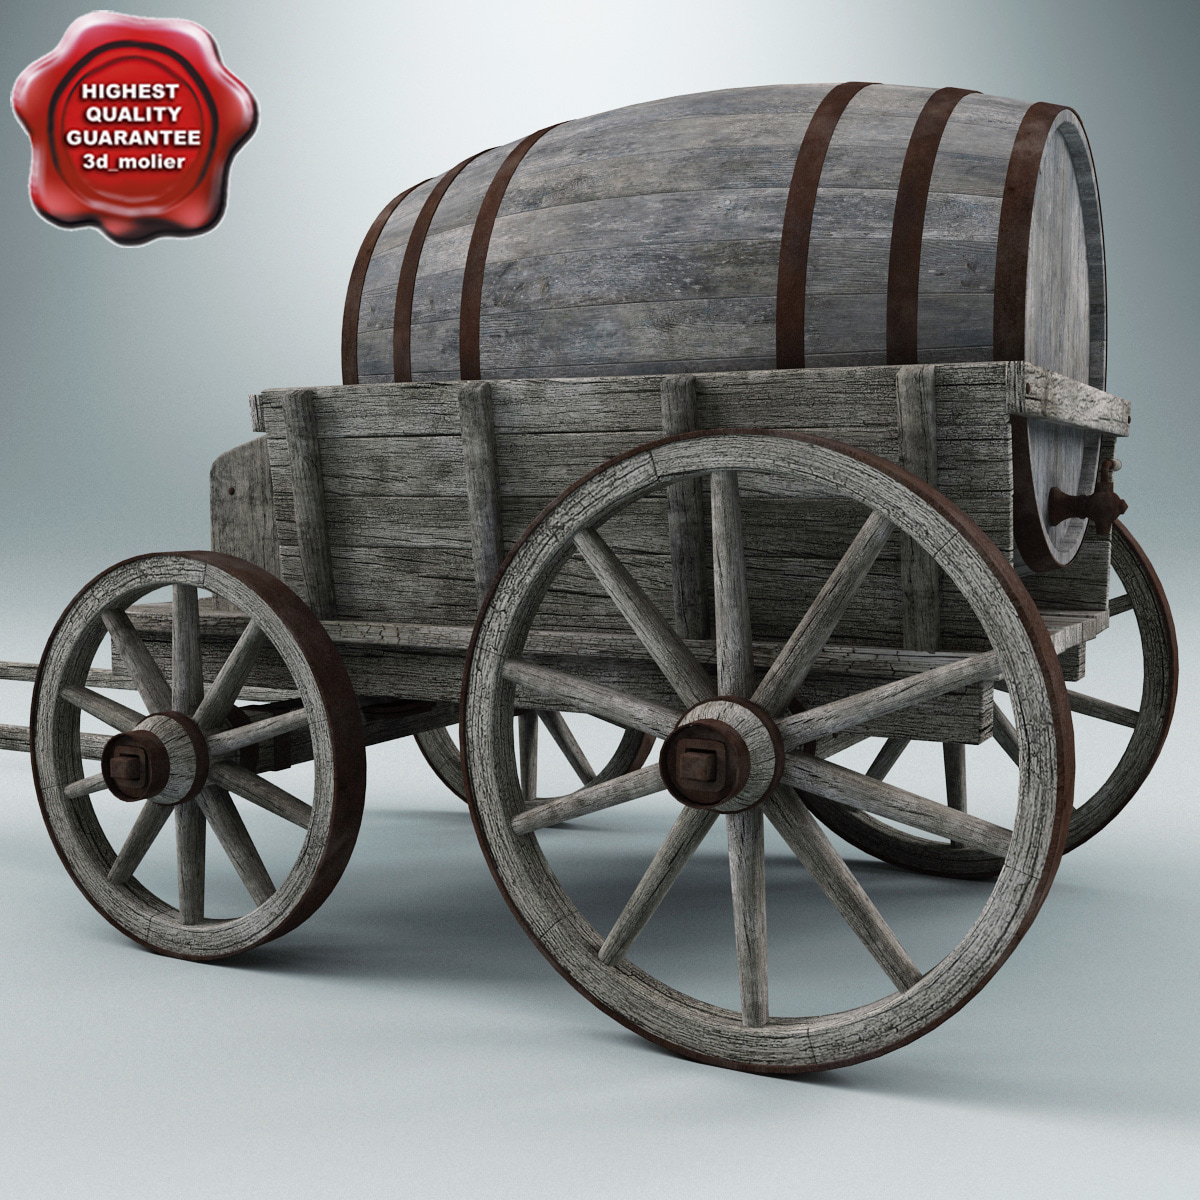 Old_Wooden_Cart_V3_20064.jpg